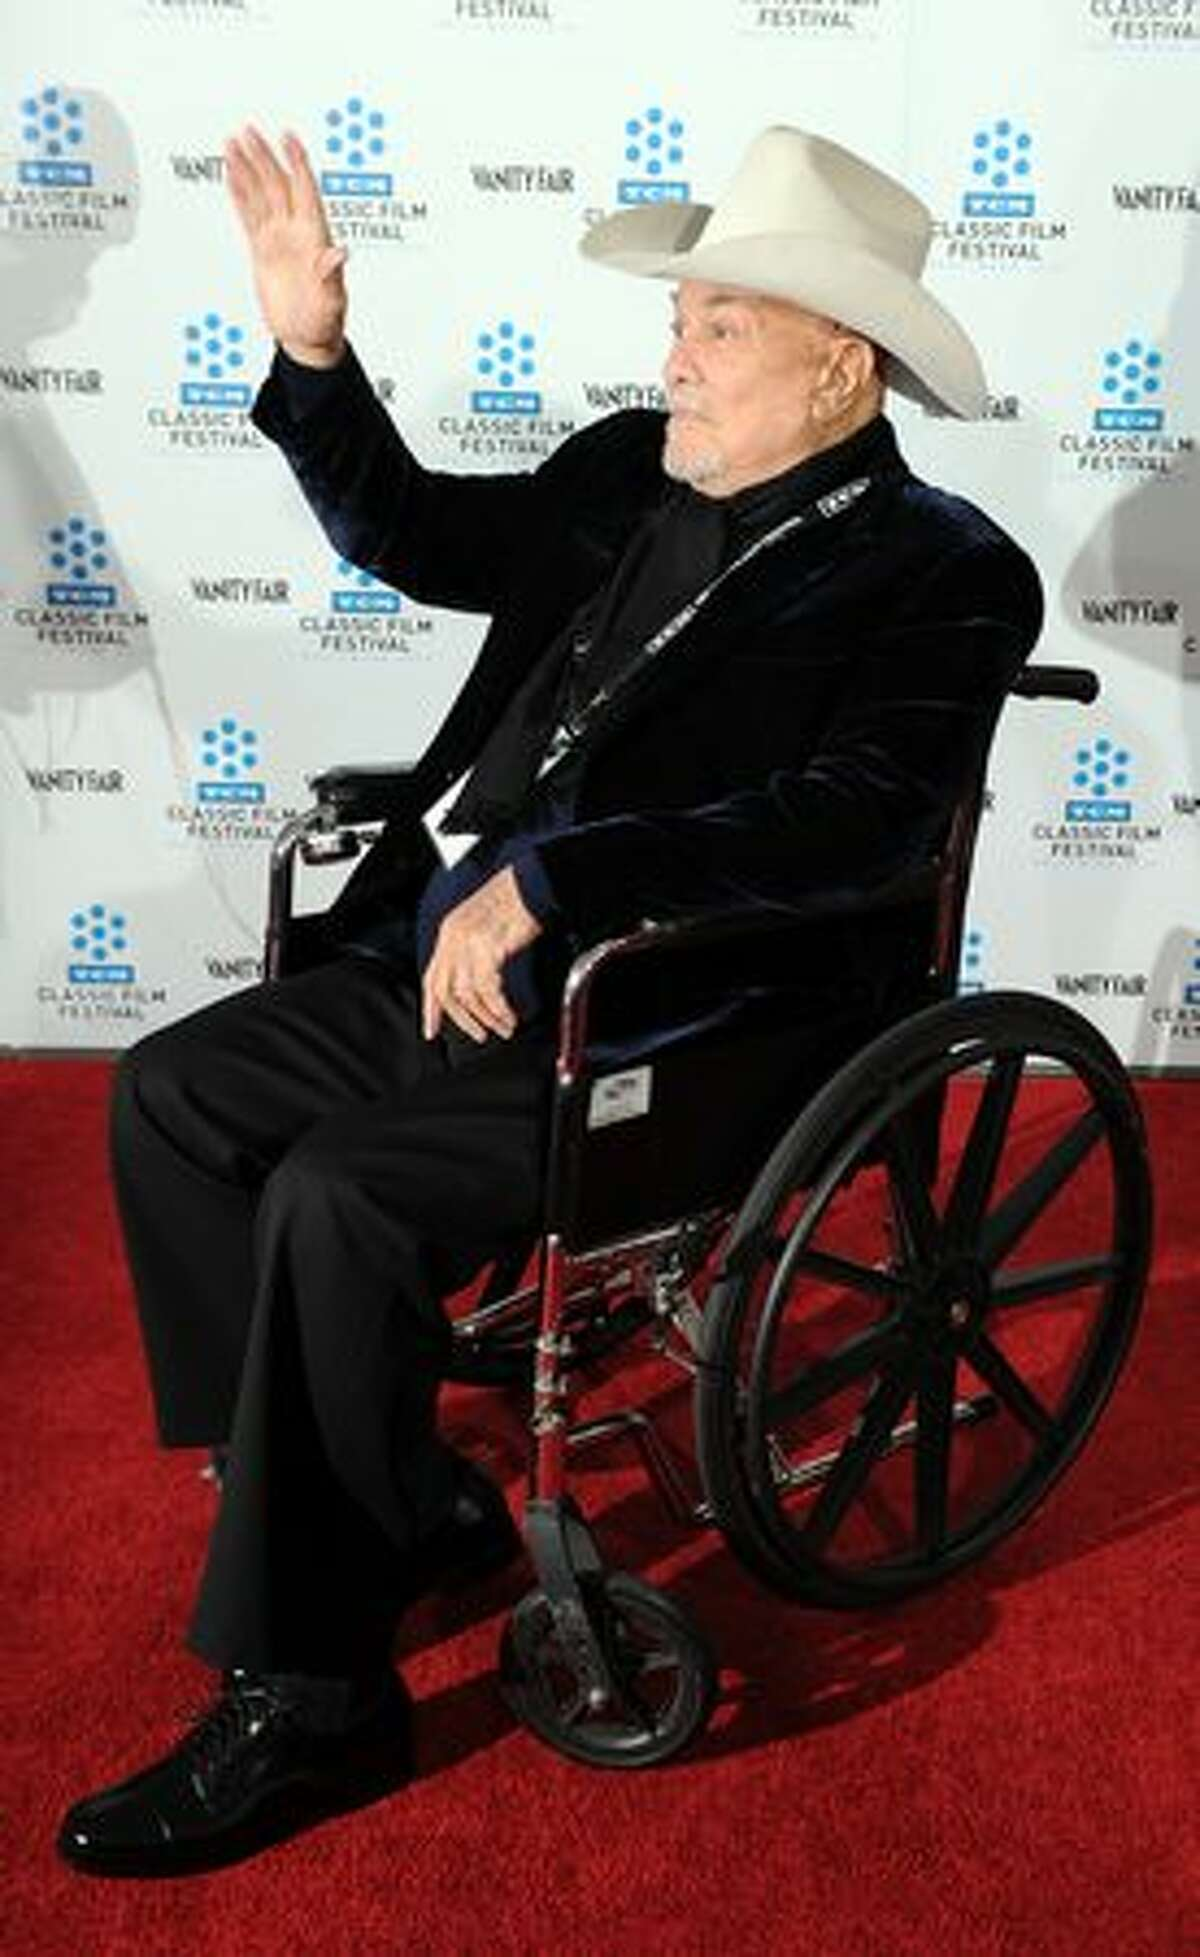 Actor Tony Curtis arrives at the world premiere of the restored